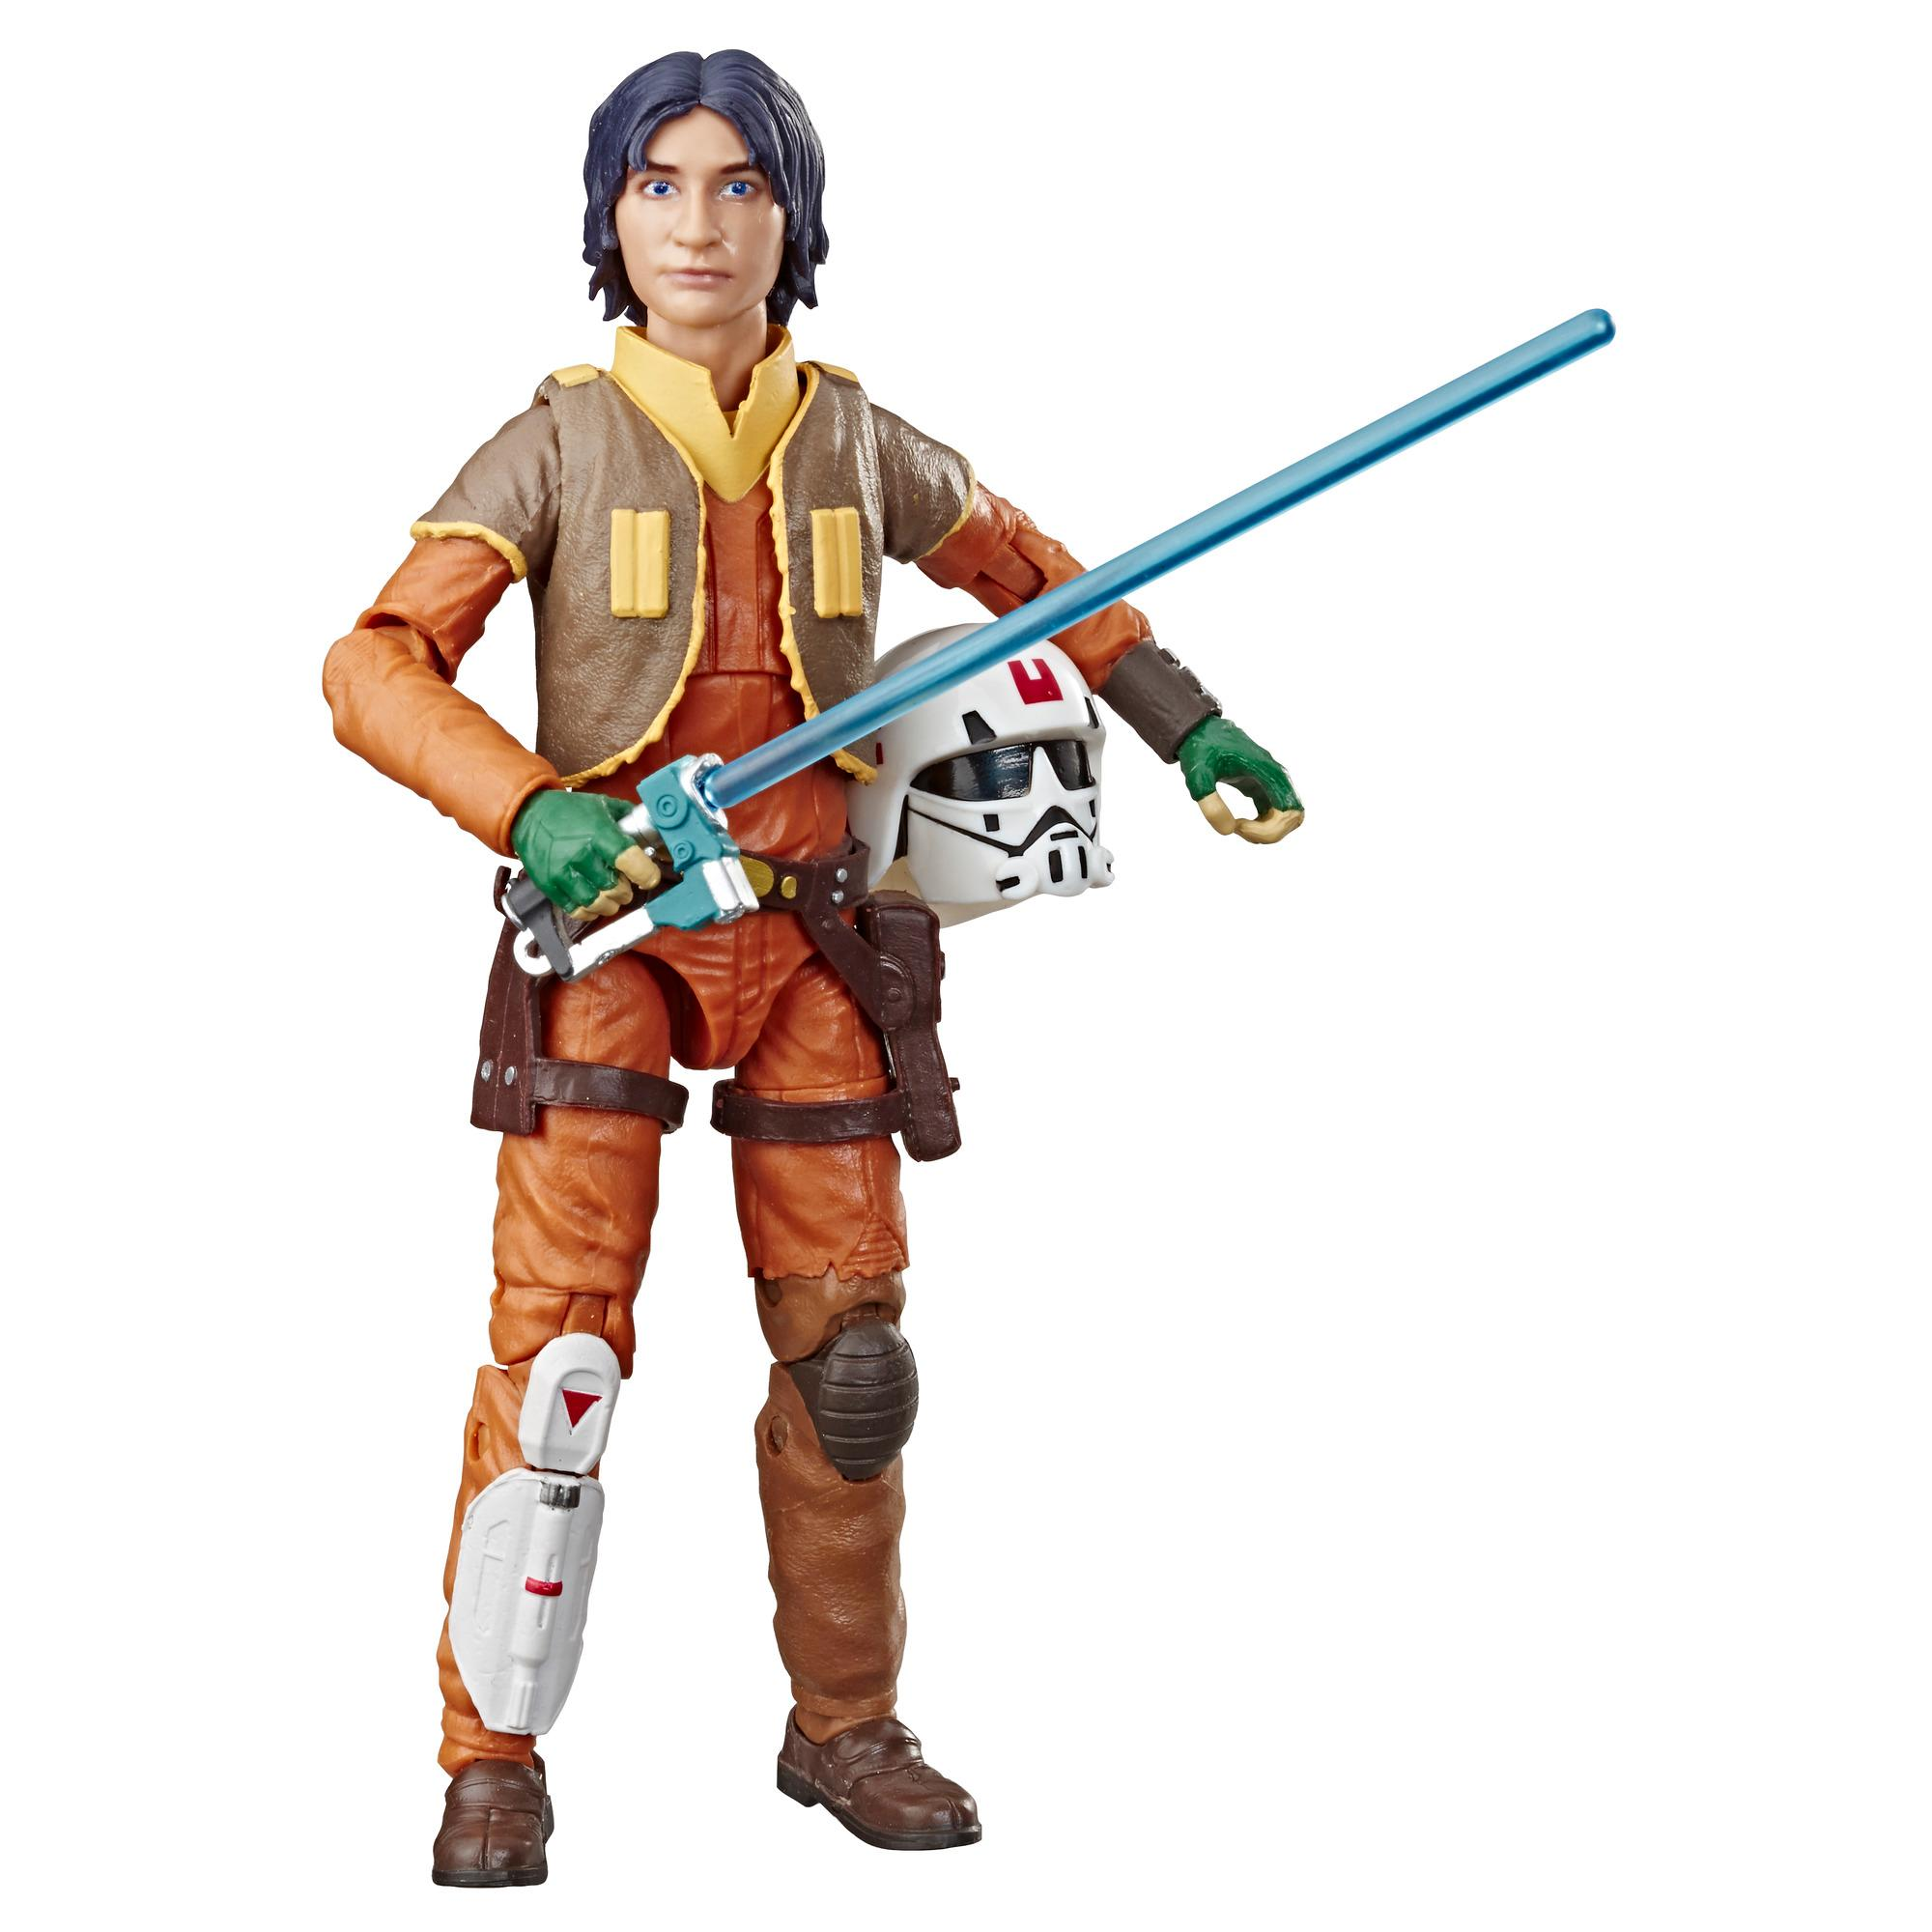 Star Wars The Black Series Star Wars: Rebels 6-Inch-Scale Ezra Bridger Figure